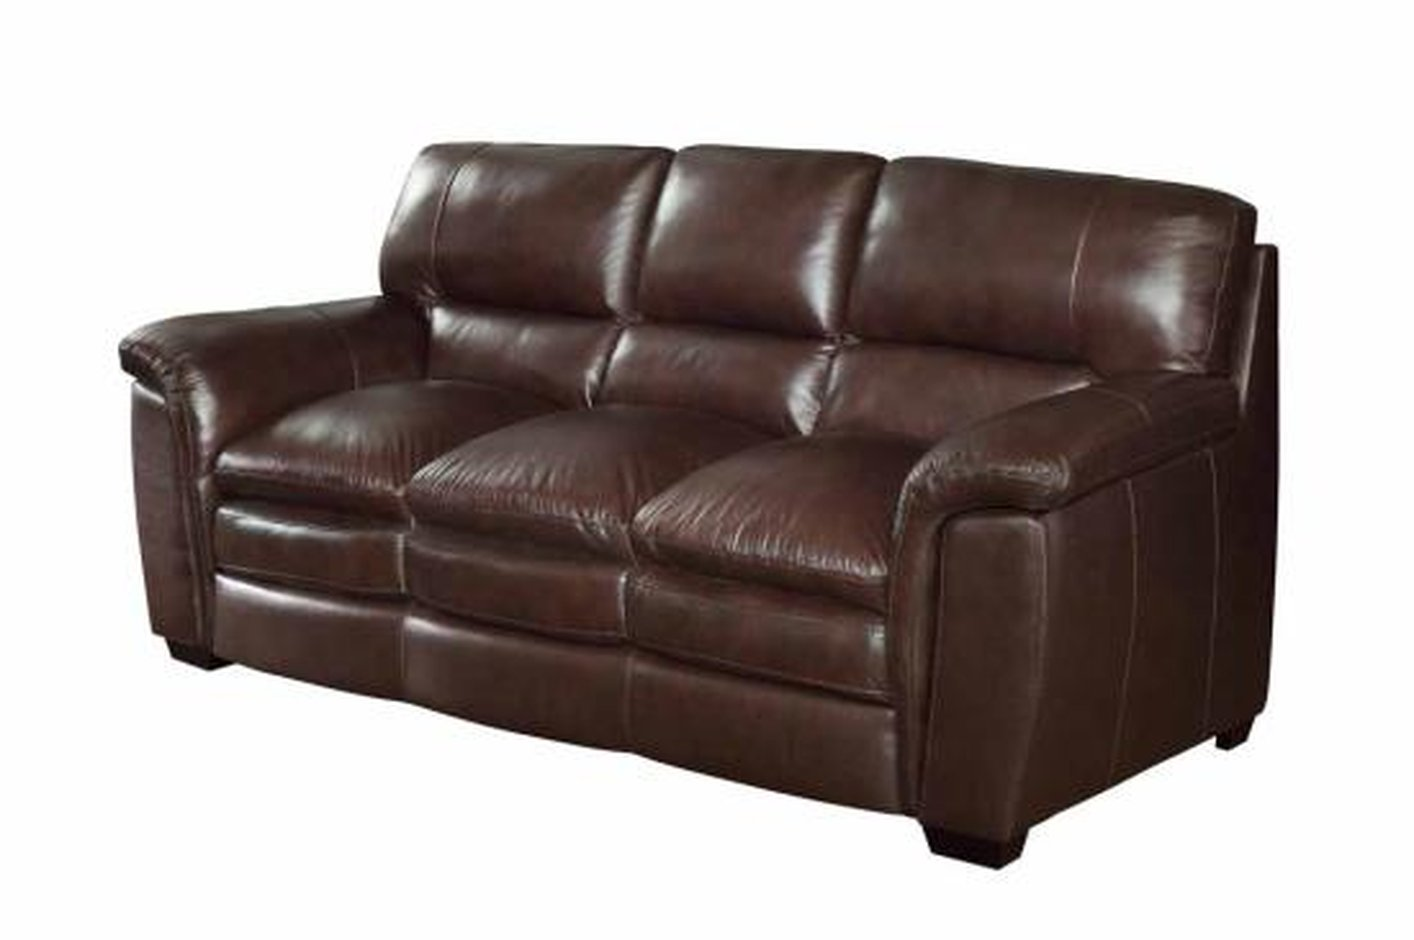 Brown leather sofa roselawnlutheran for Leather sectional sofa